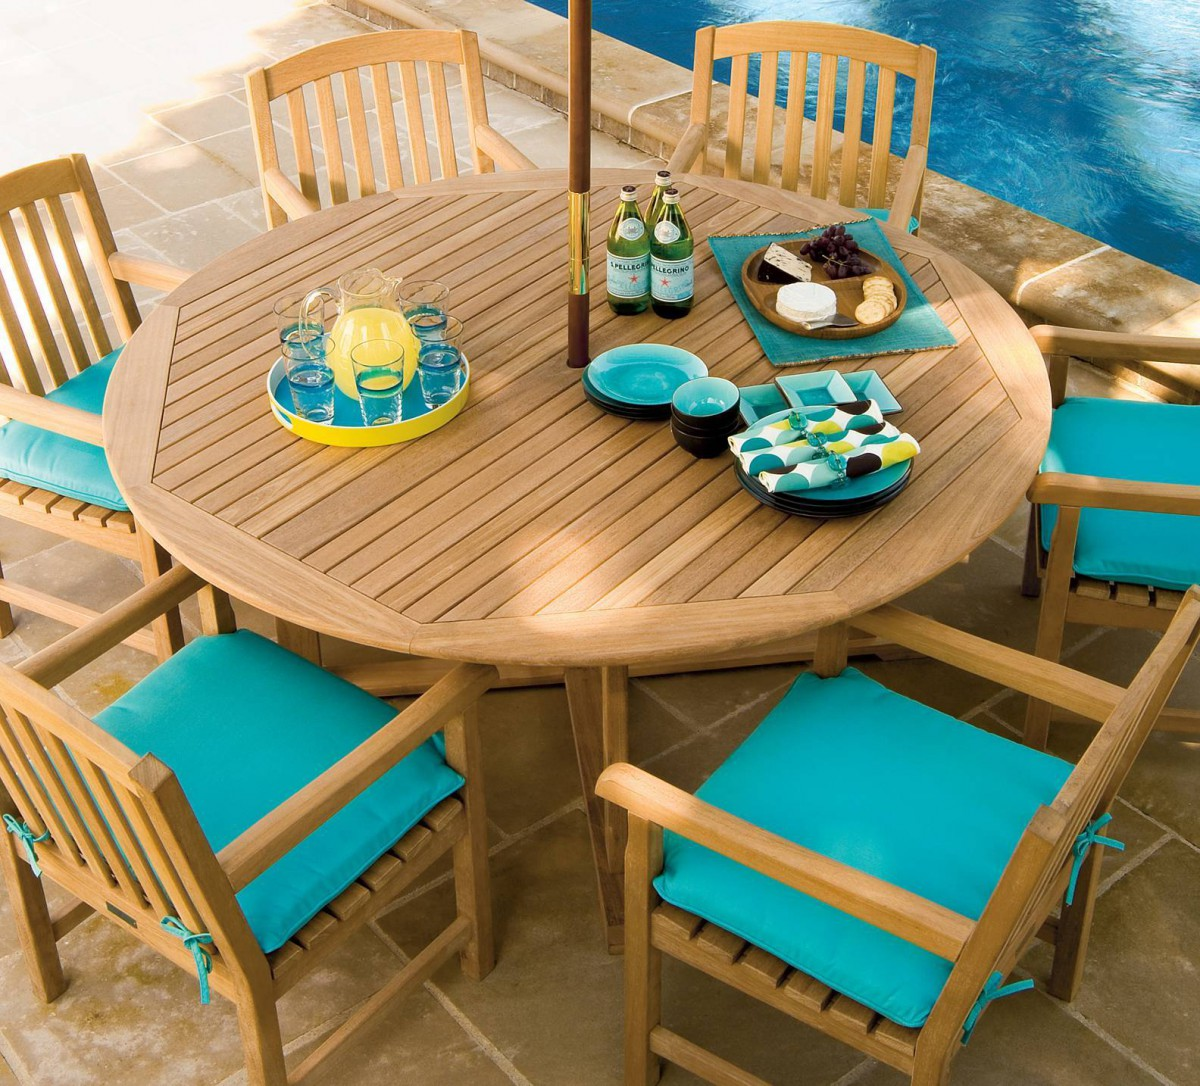 Oxford Garden Round Shorea Outdoor Teak Wood Dining Table